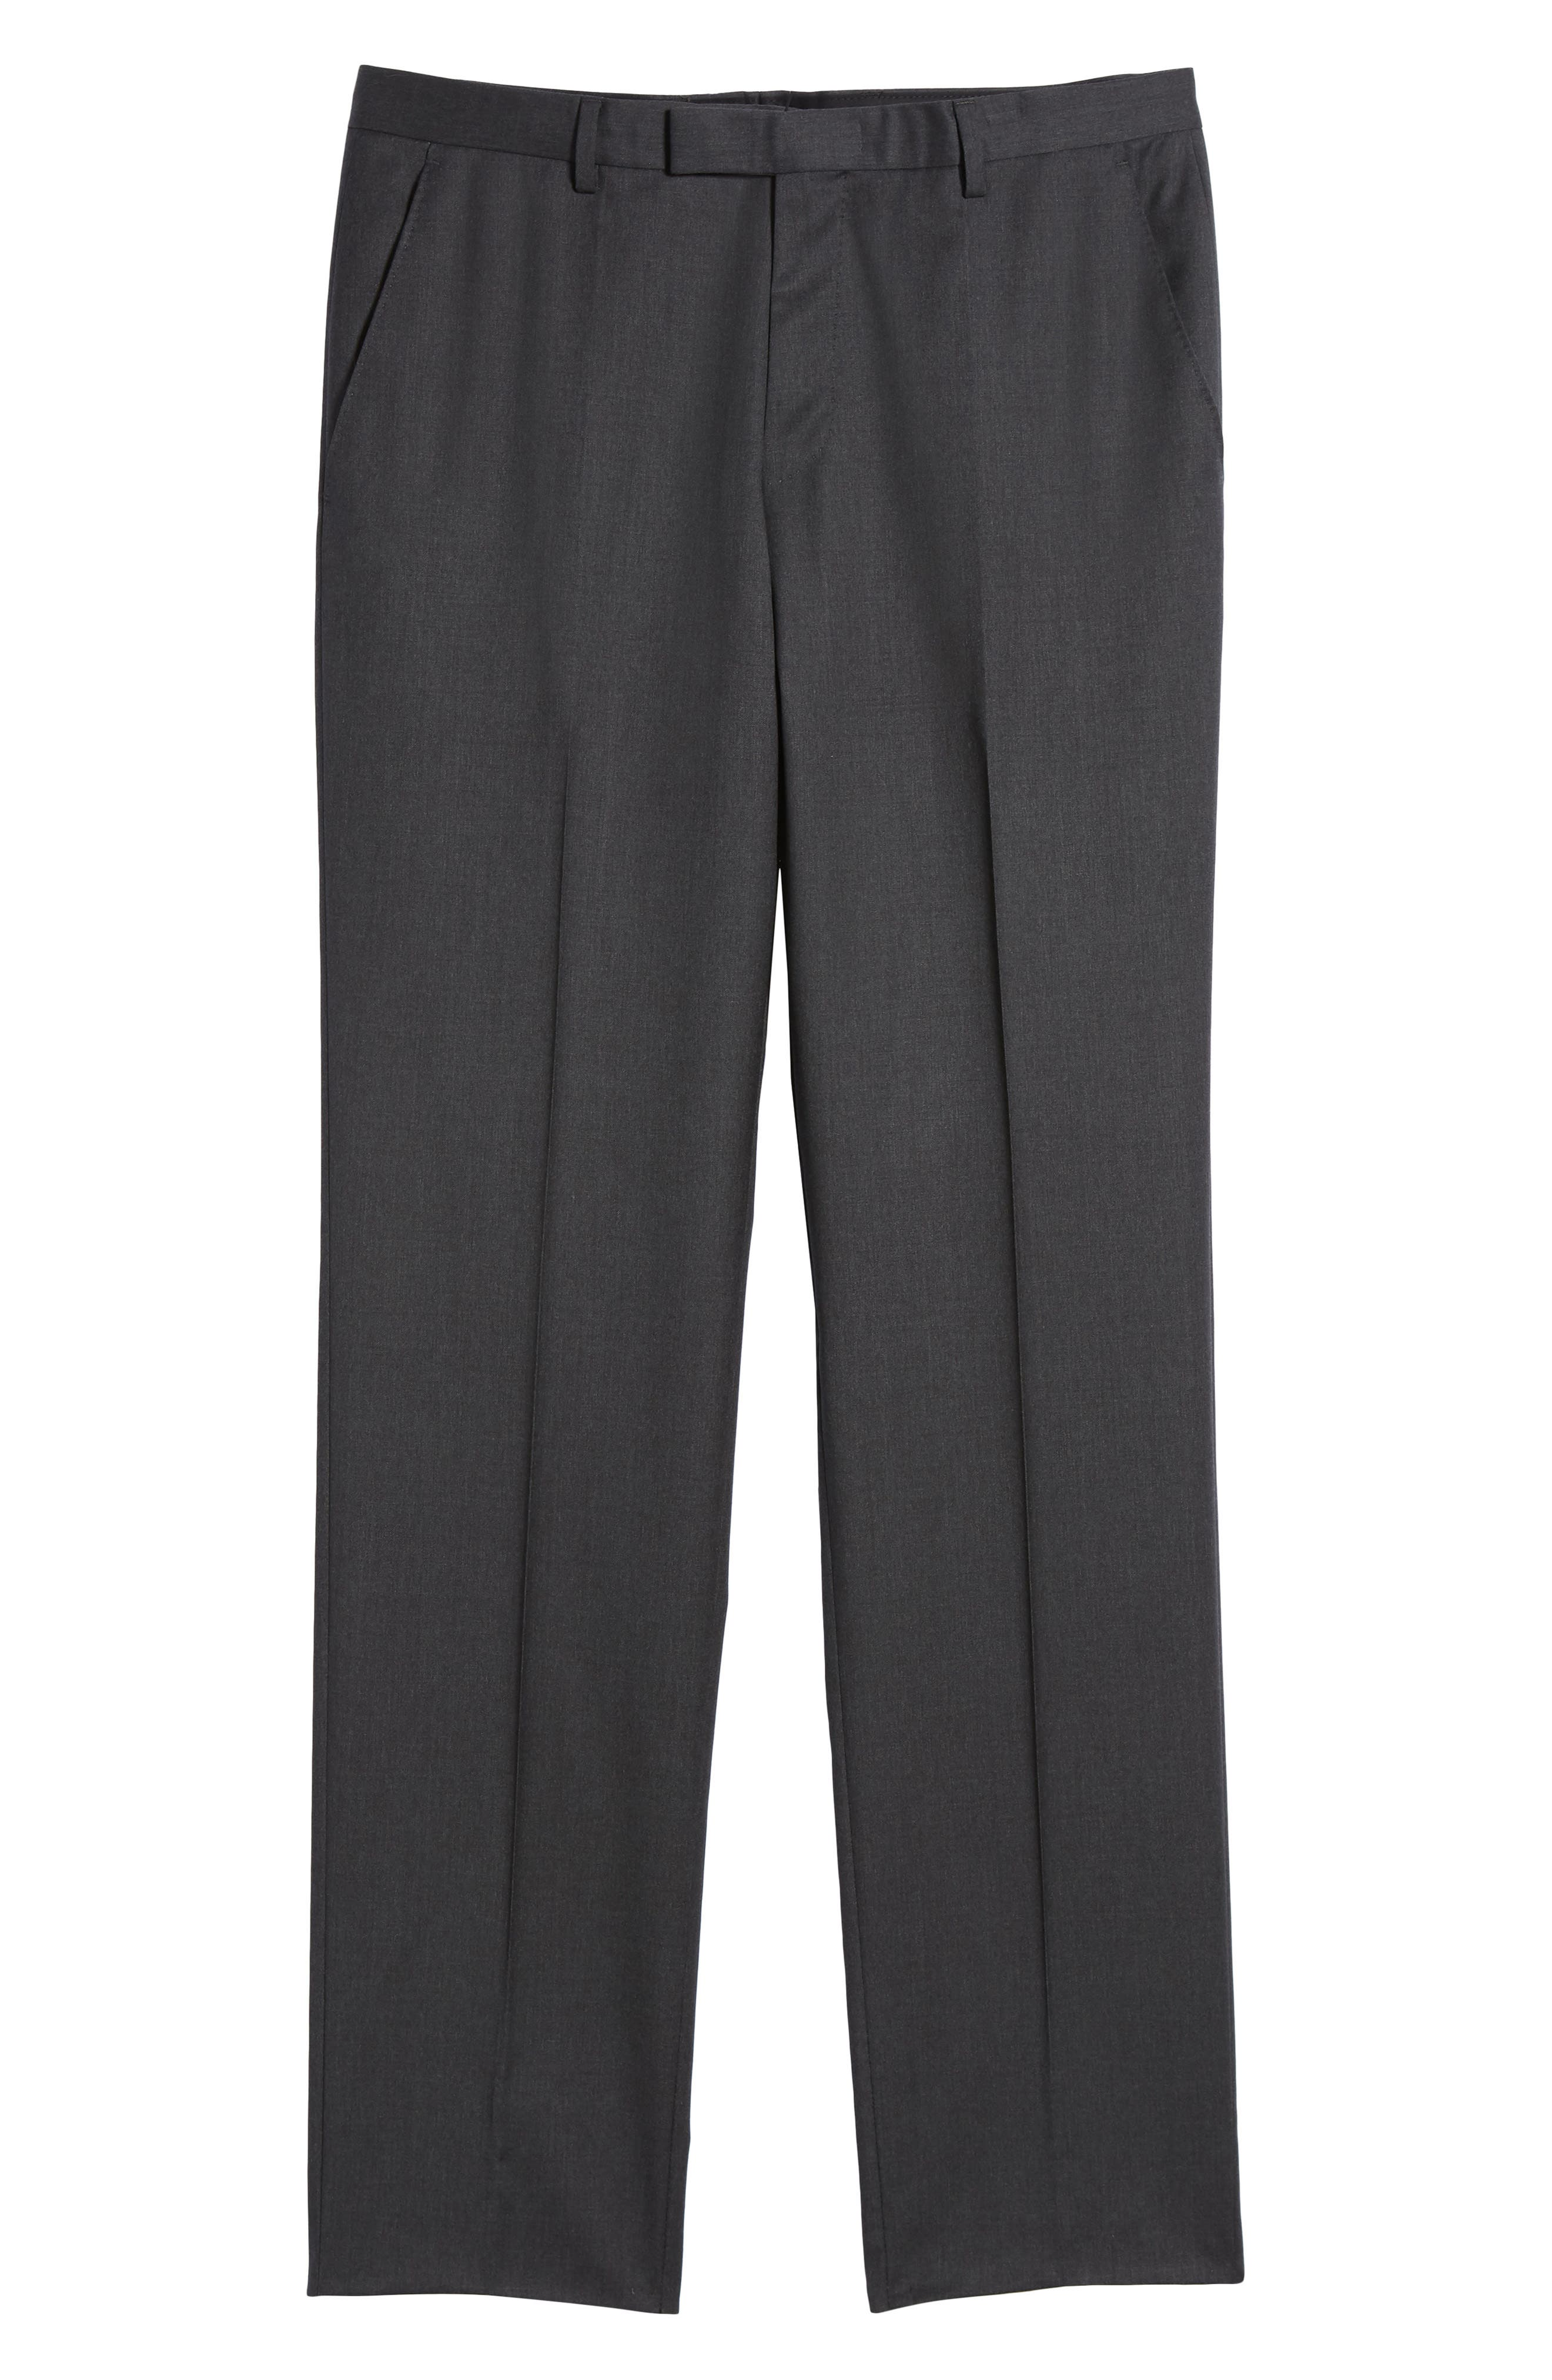 Lenon CYL Flat Front Solid Wool Trousers,                             Alternate thumbnail 6, color,                             Dark Grey